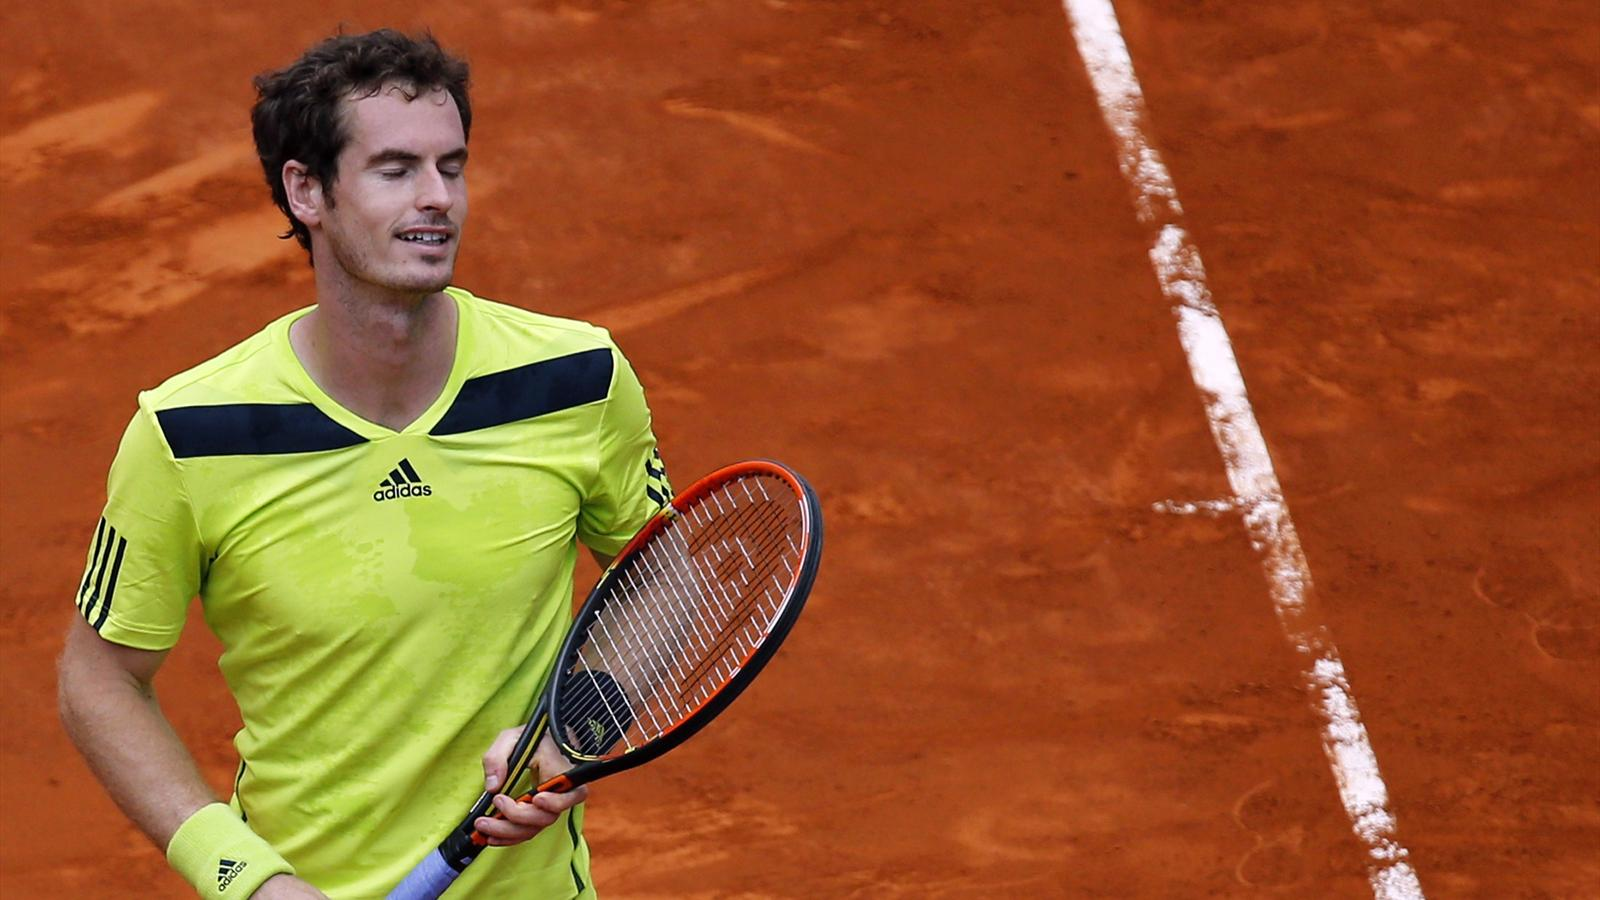 Andy Murray is searching for consistency after being dumped out of the Madrid Open (Reuters)